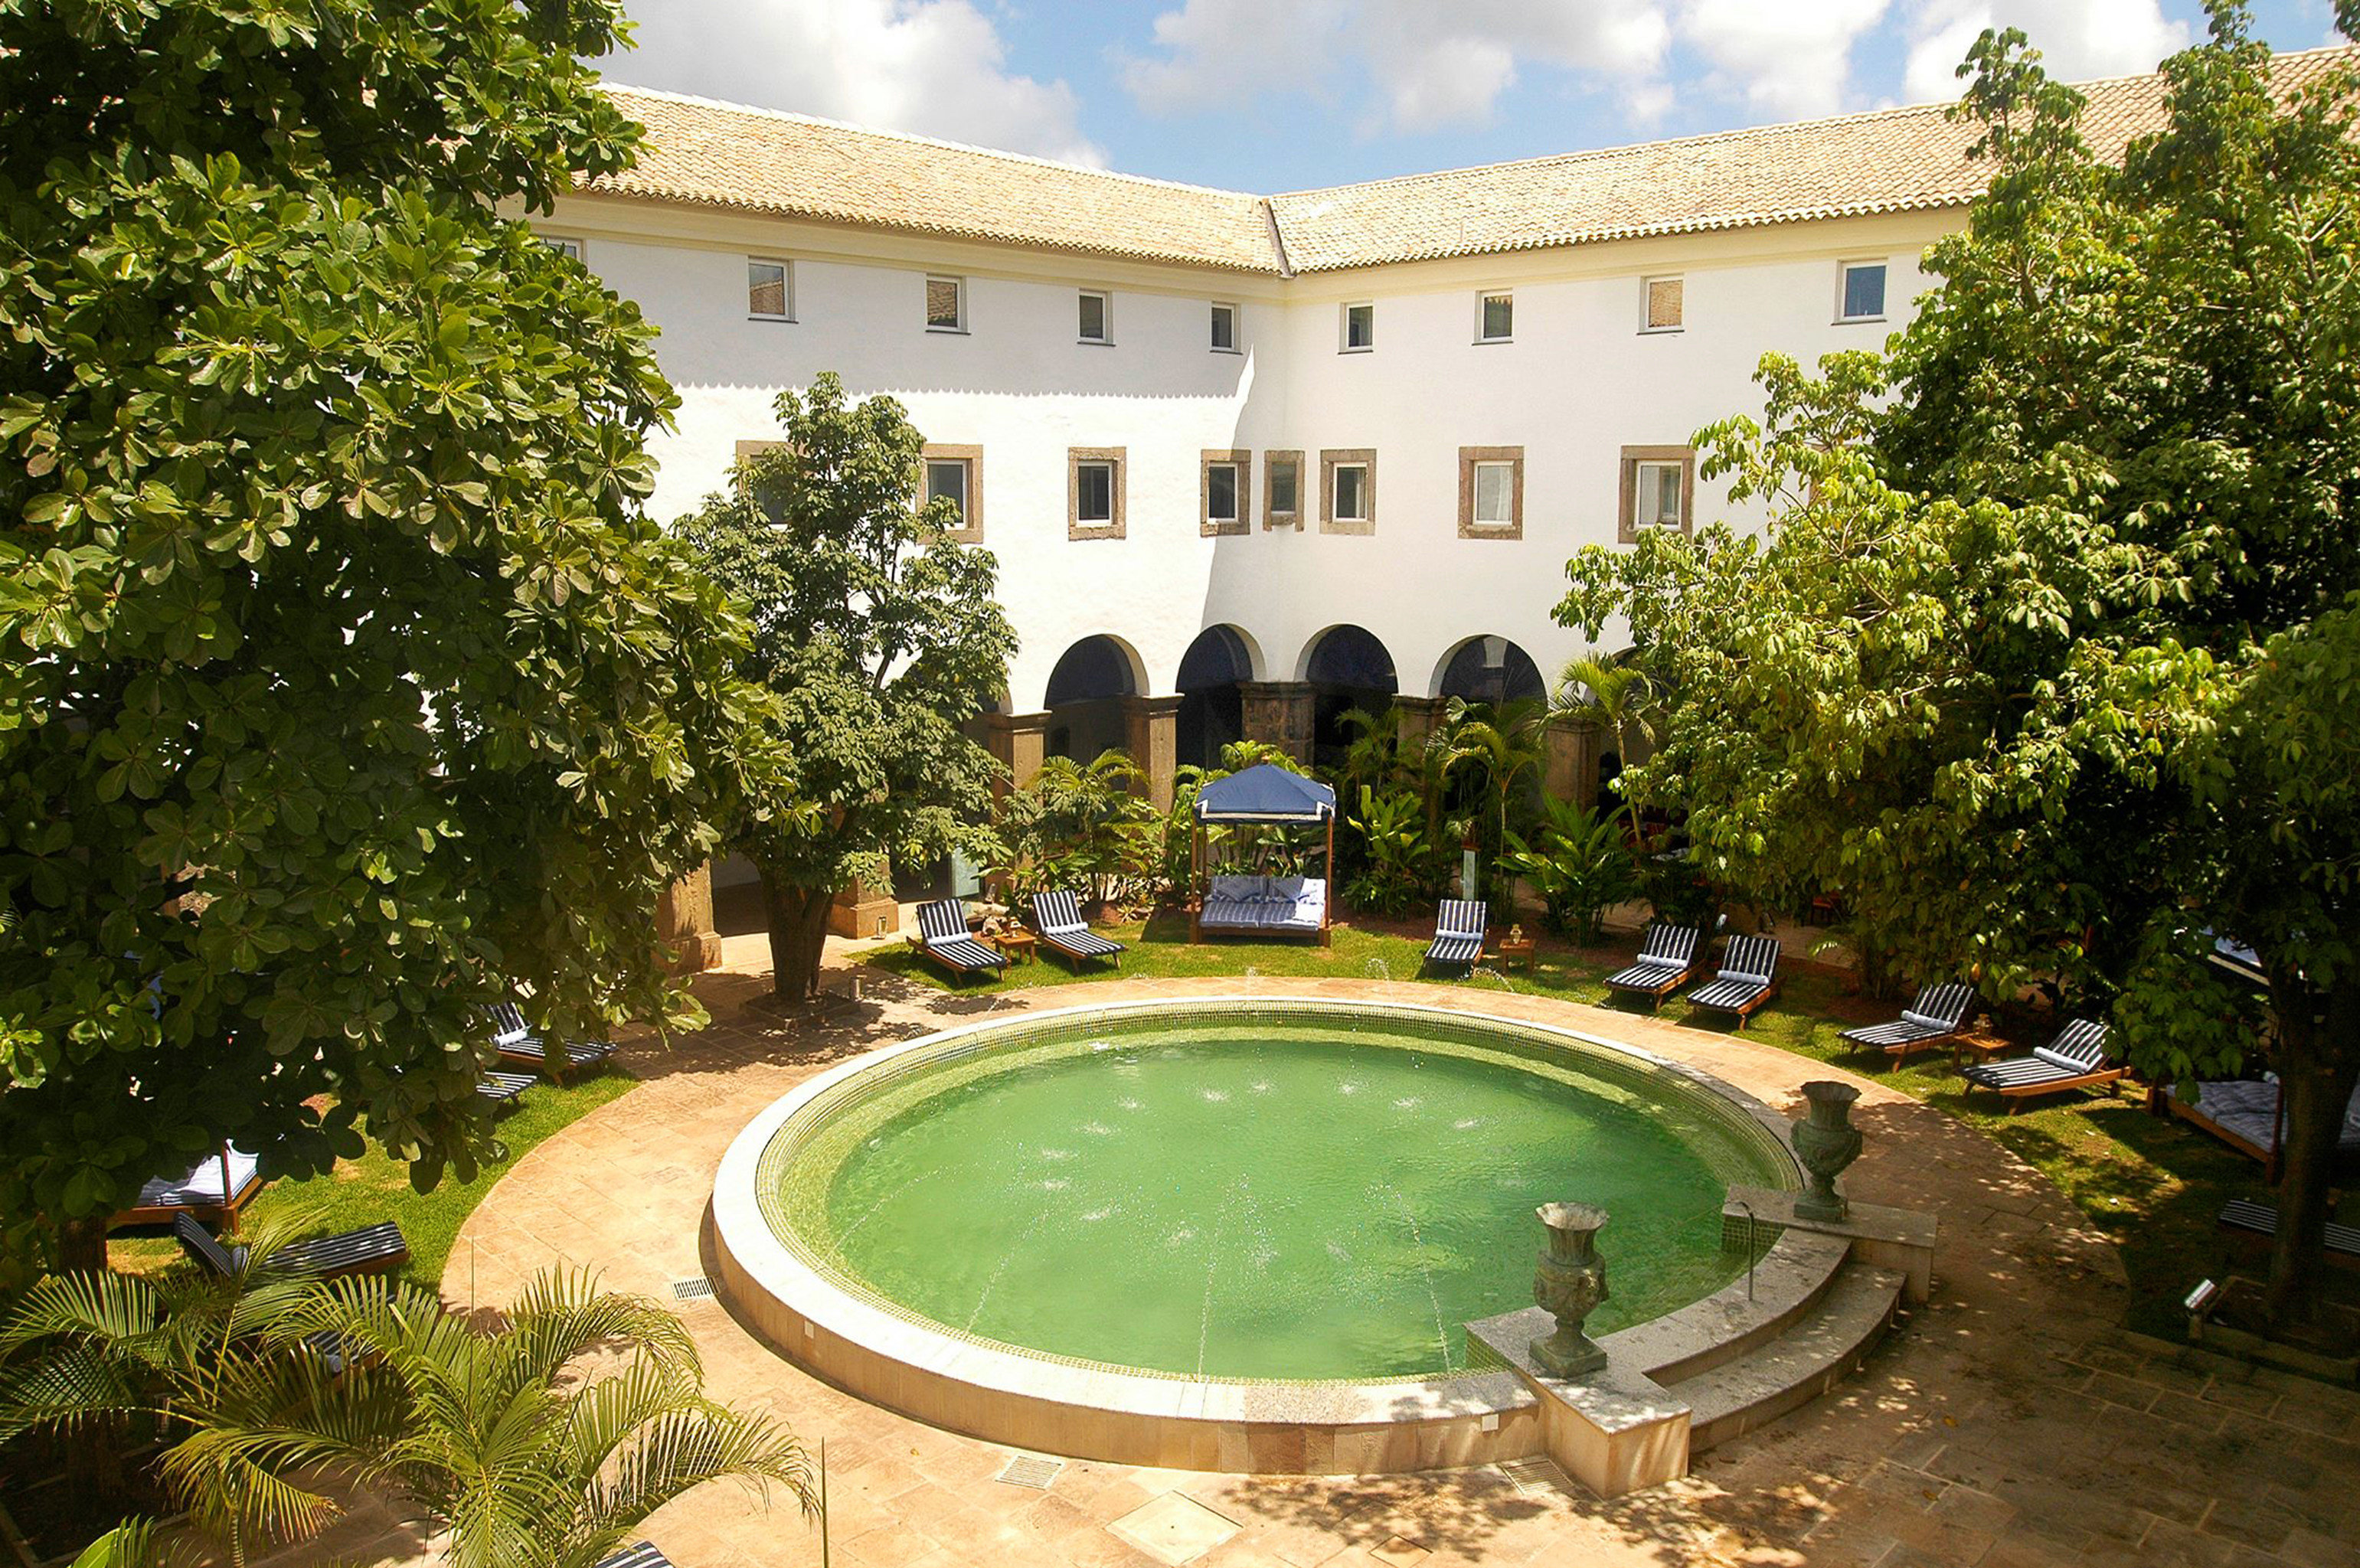 Courtyard Elegant Historic Lounge Outdoors Patio Pool Terrace tree swimming pool Garden reflecting pool palace green mansion plaza water feature town square Resort lawn backyard fountain château Villa